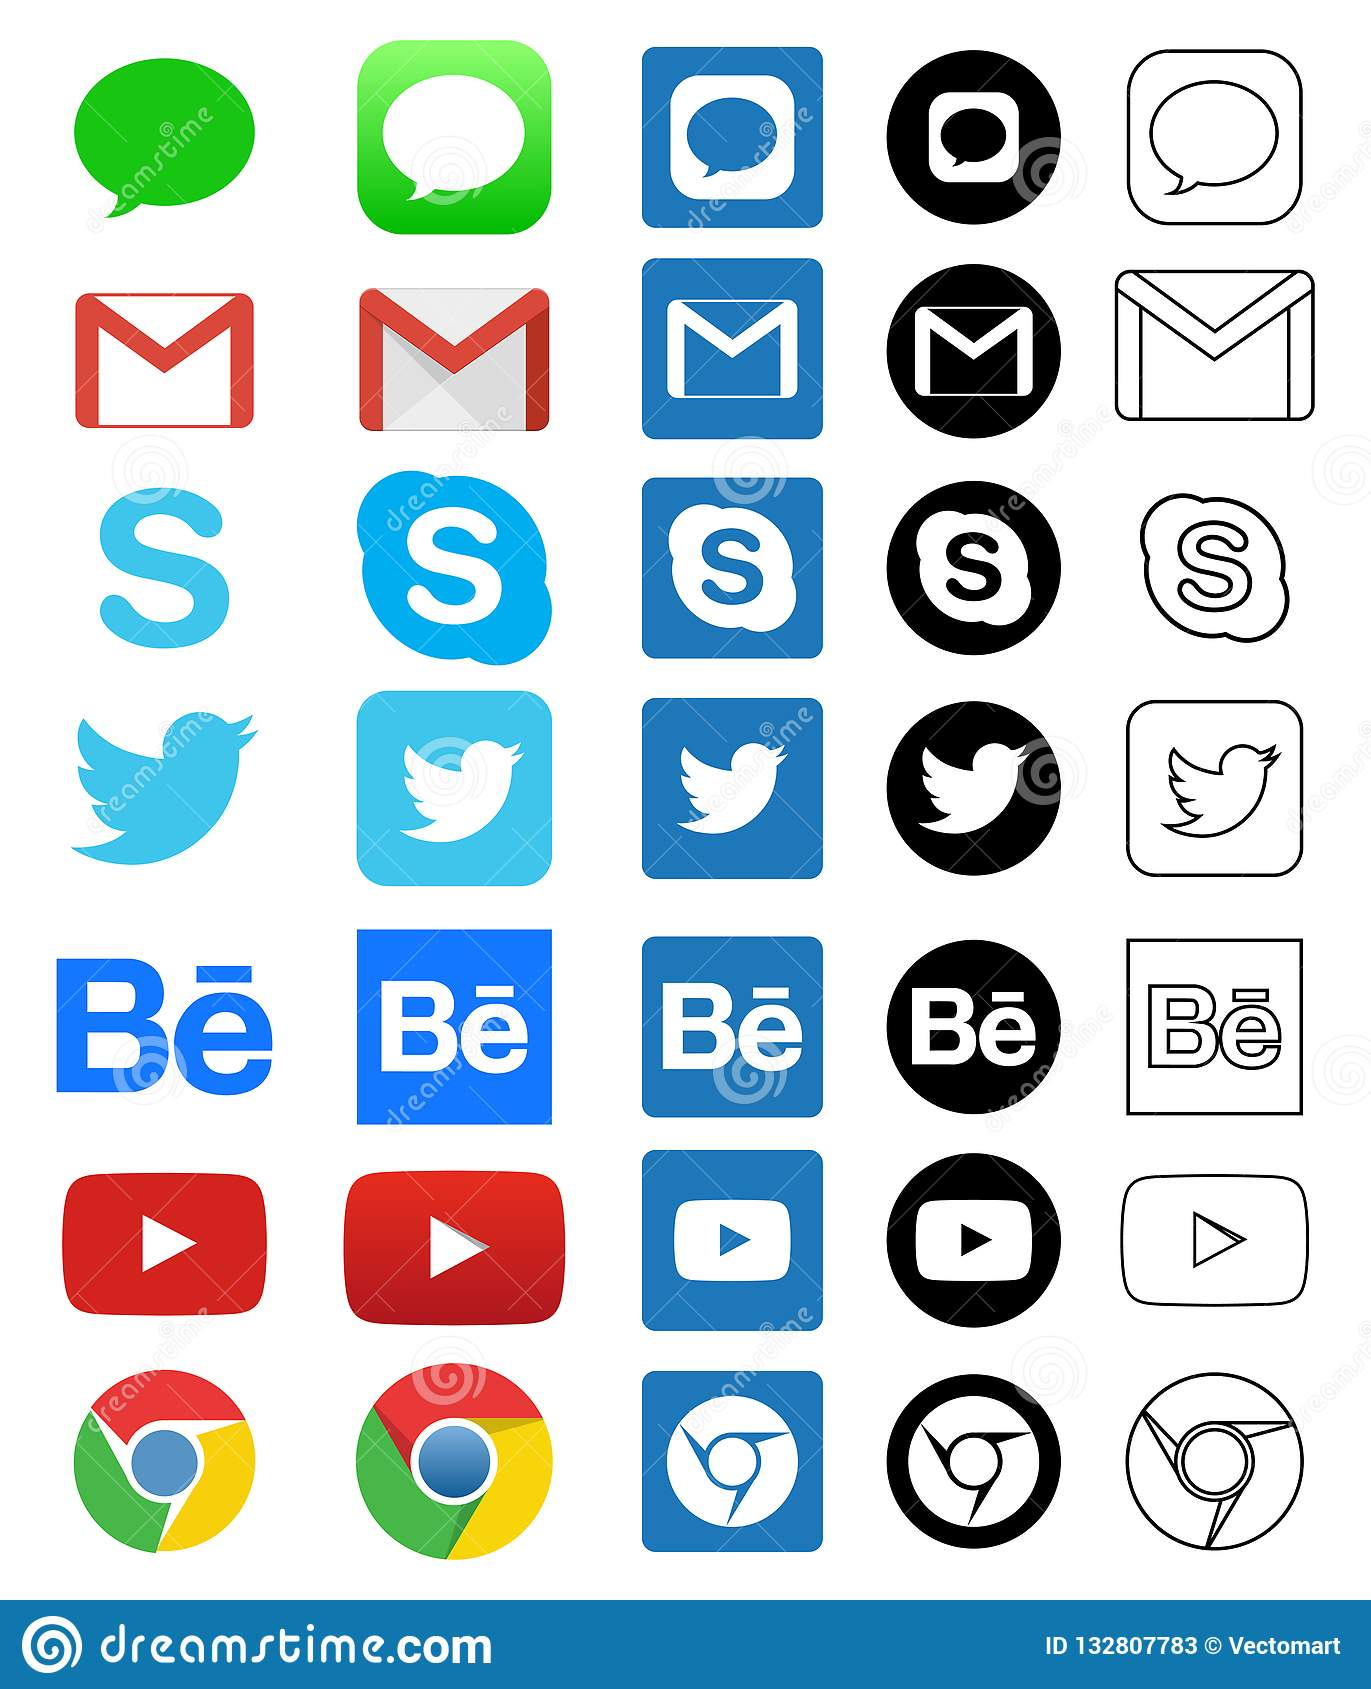 Facebook Twitter Instagram Icons : facebook, twitter, instagram, icons, Social, Media, Facebook, Twitter, Instagram, Stock, Illustrations, 1,593, Illustrations,, Vectors, Clipart, Dreamstime